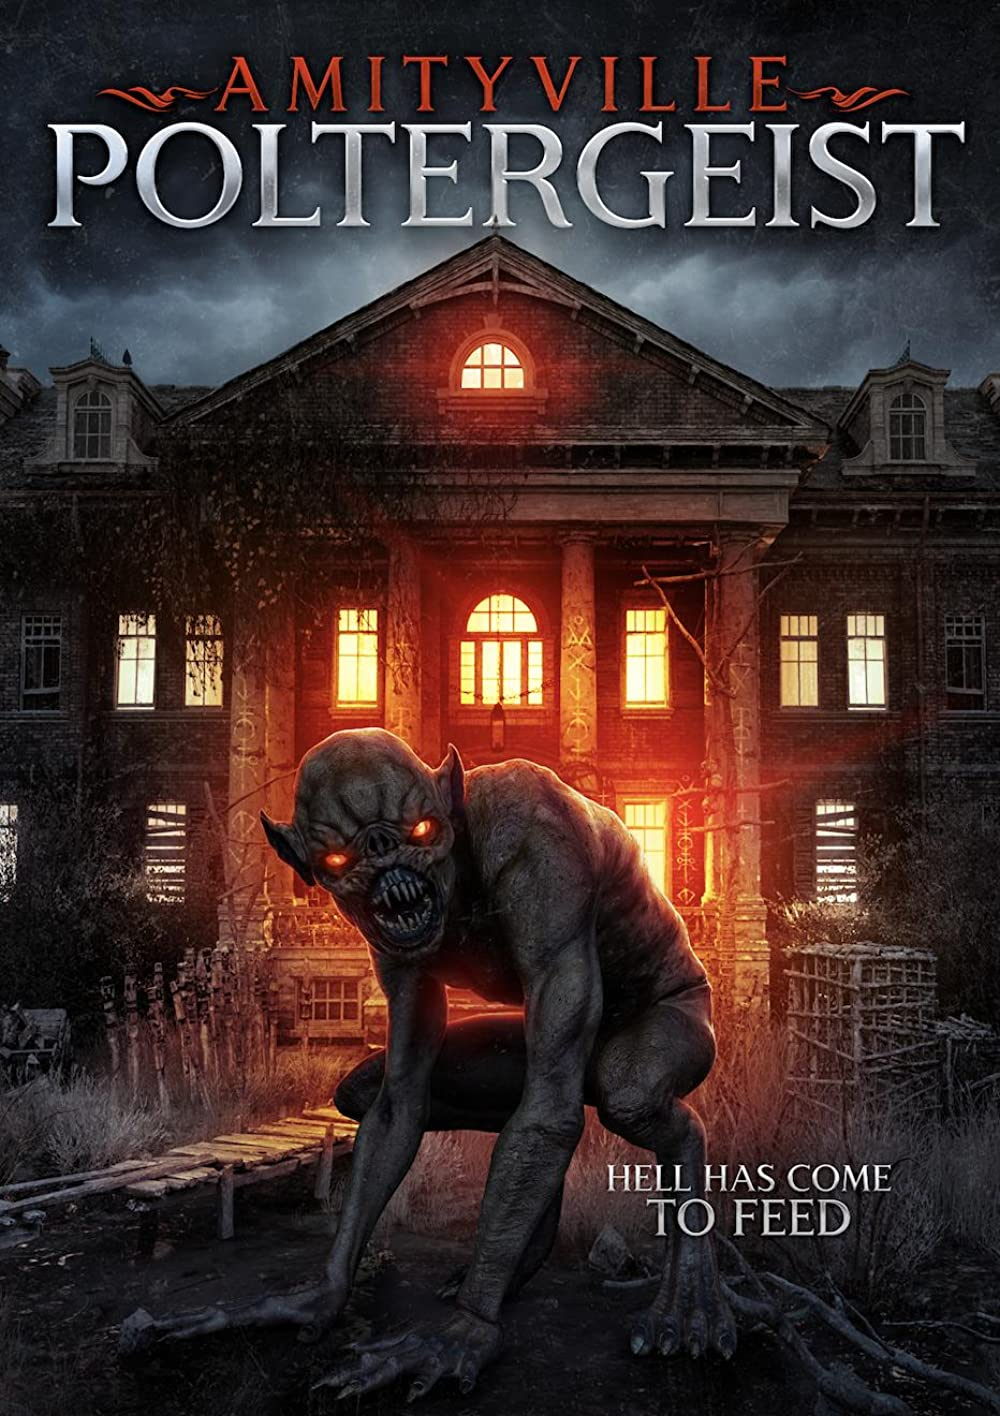 An Amityville Poltergeist 2021 English 720p HDRip 800MB | 282MB Download